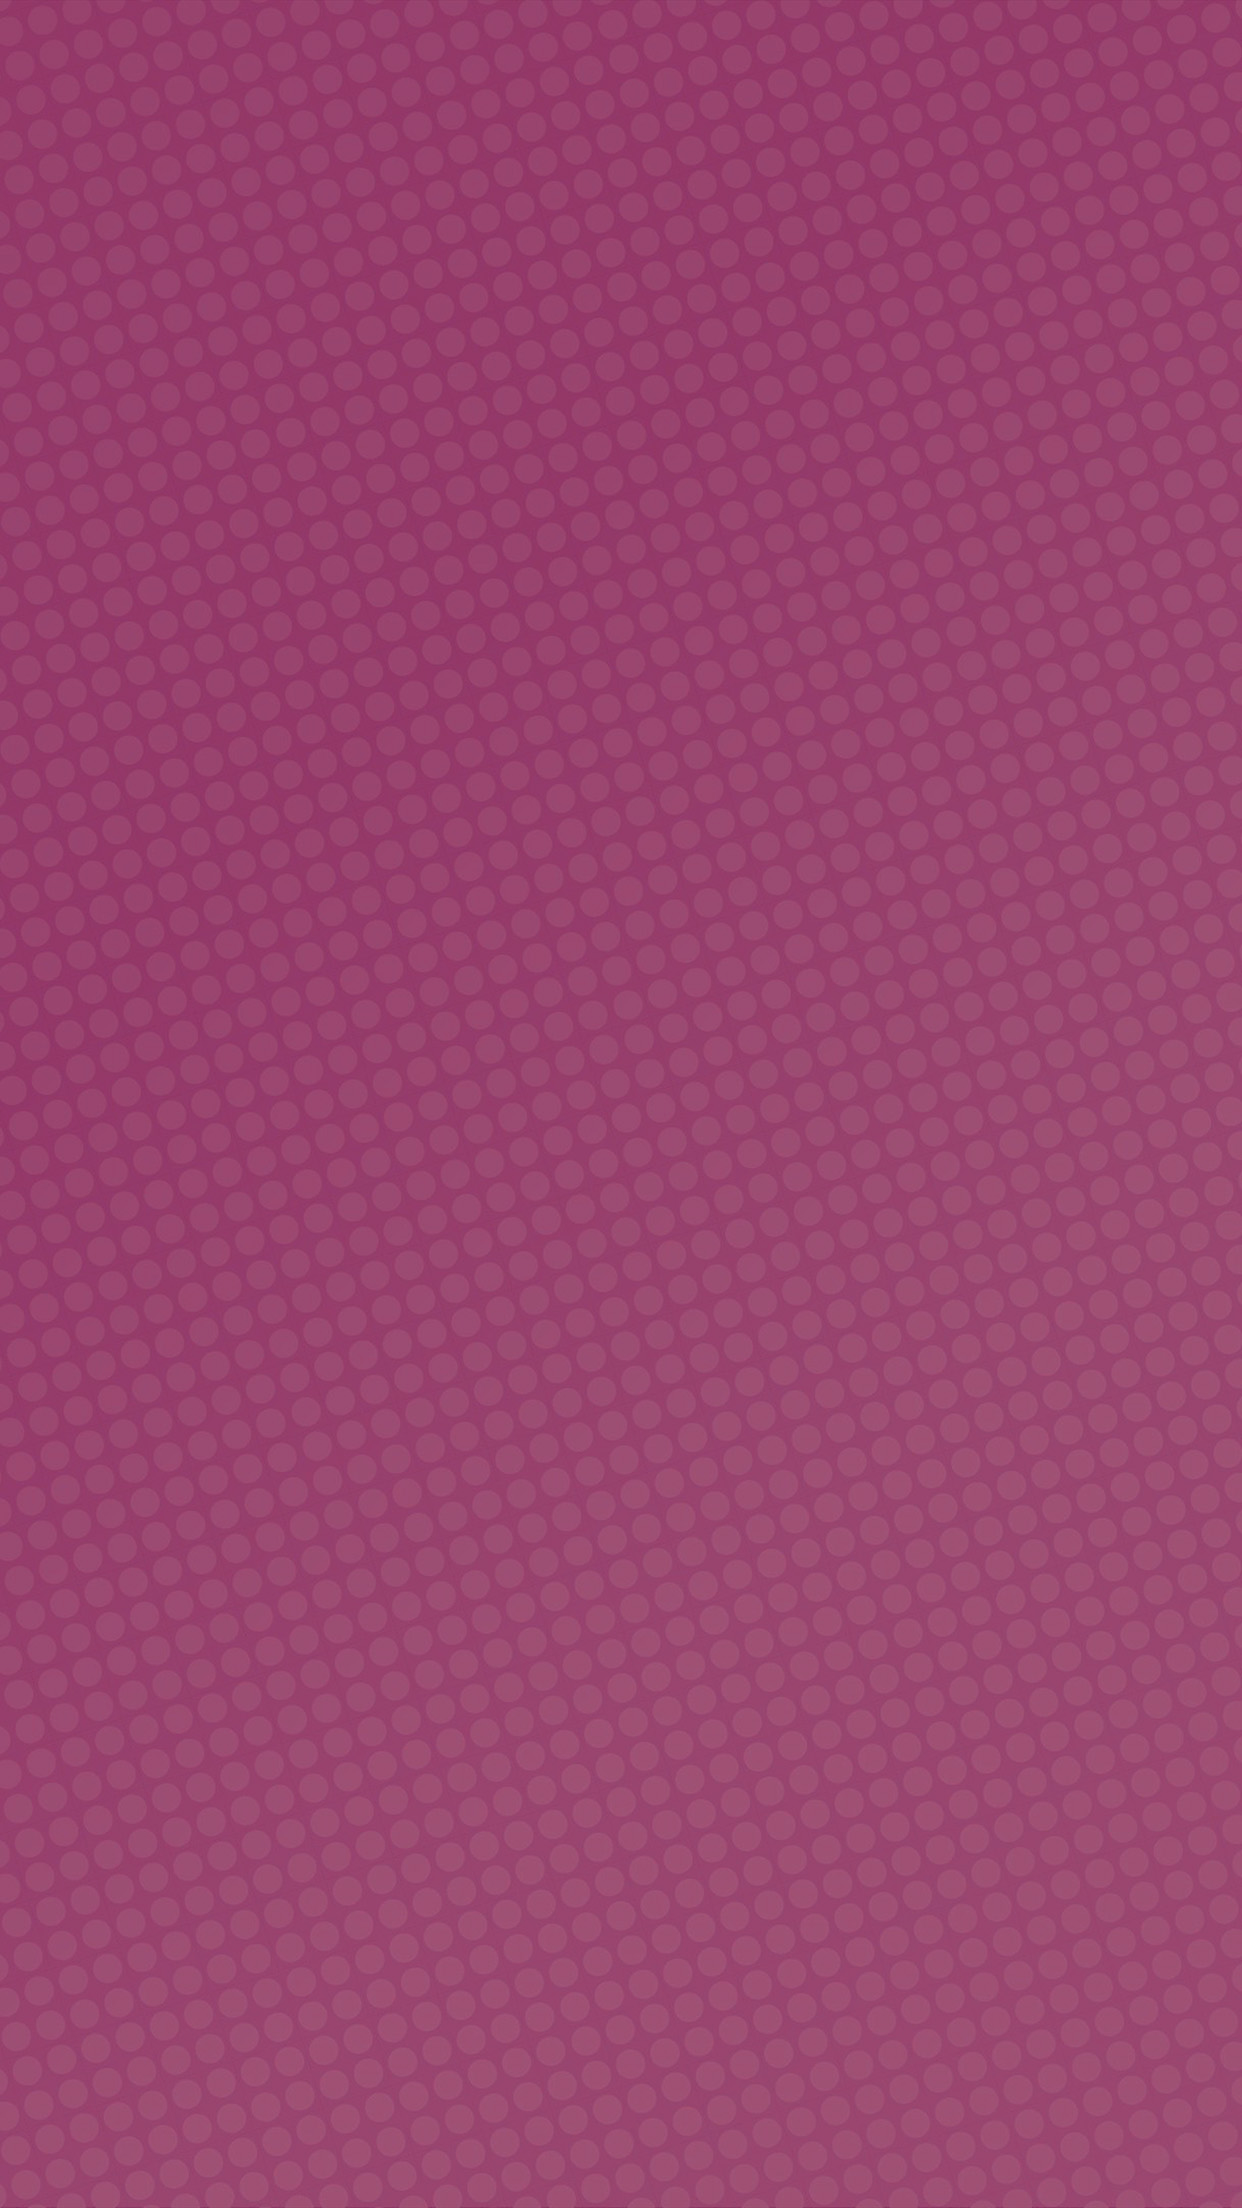 Fall Wallpaper Iphone 7 Plus Papers Co Iphone Wallpaper Vq47 Dots Red Violet